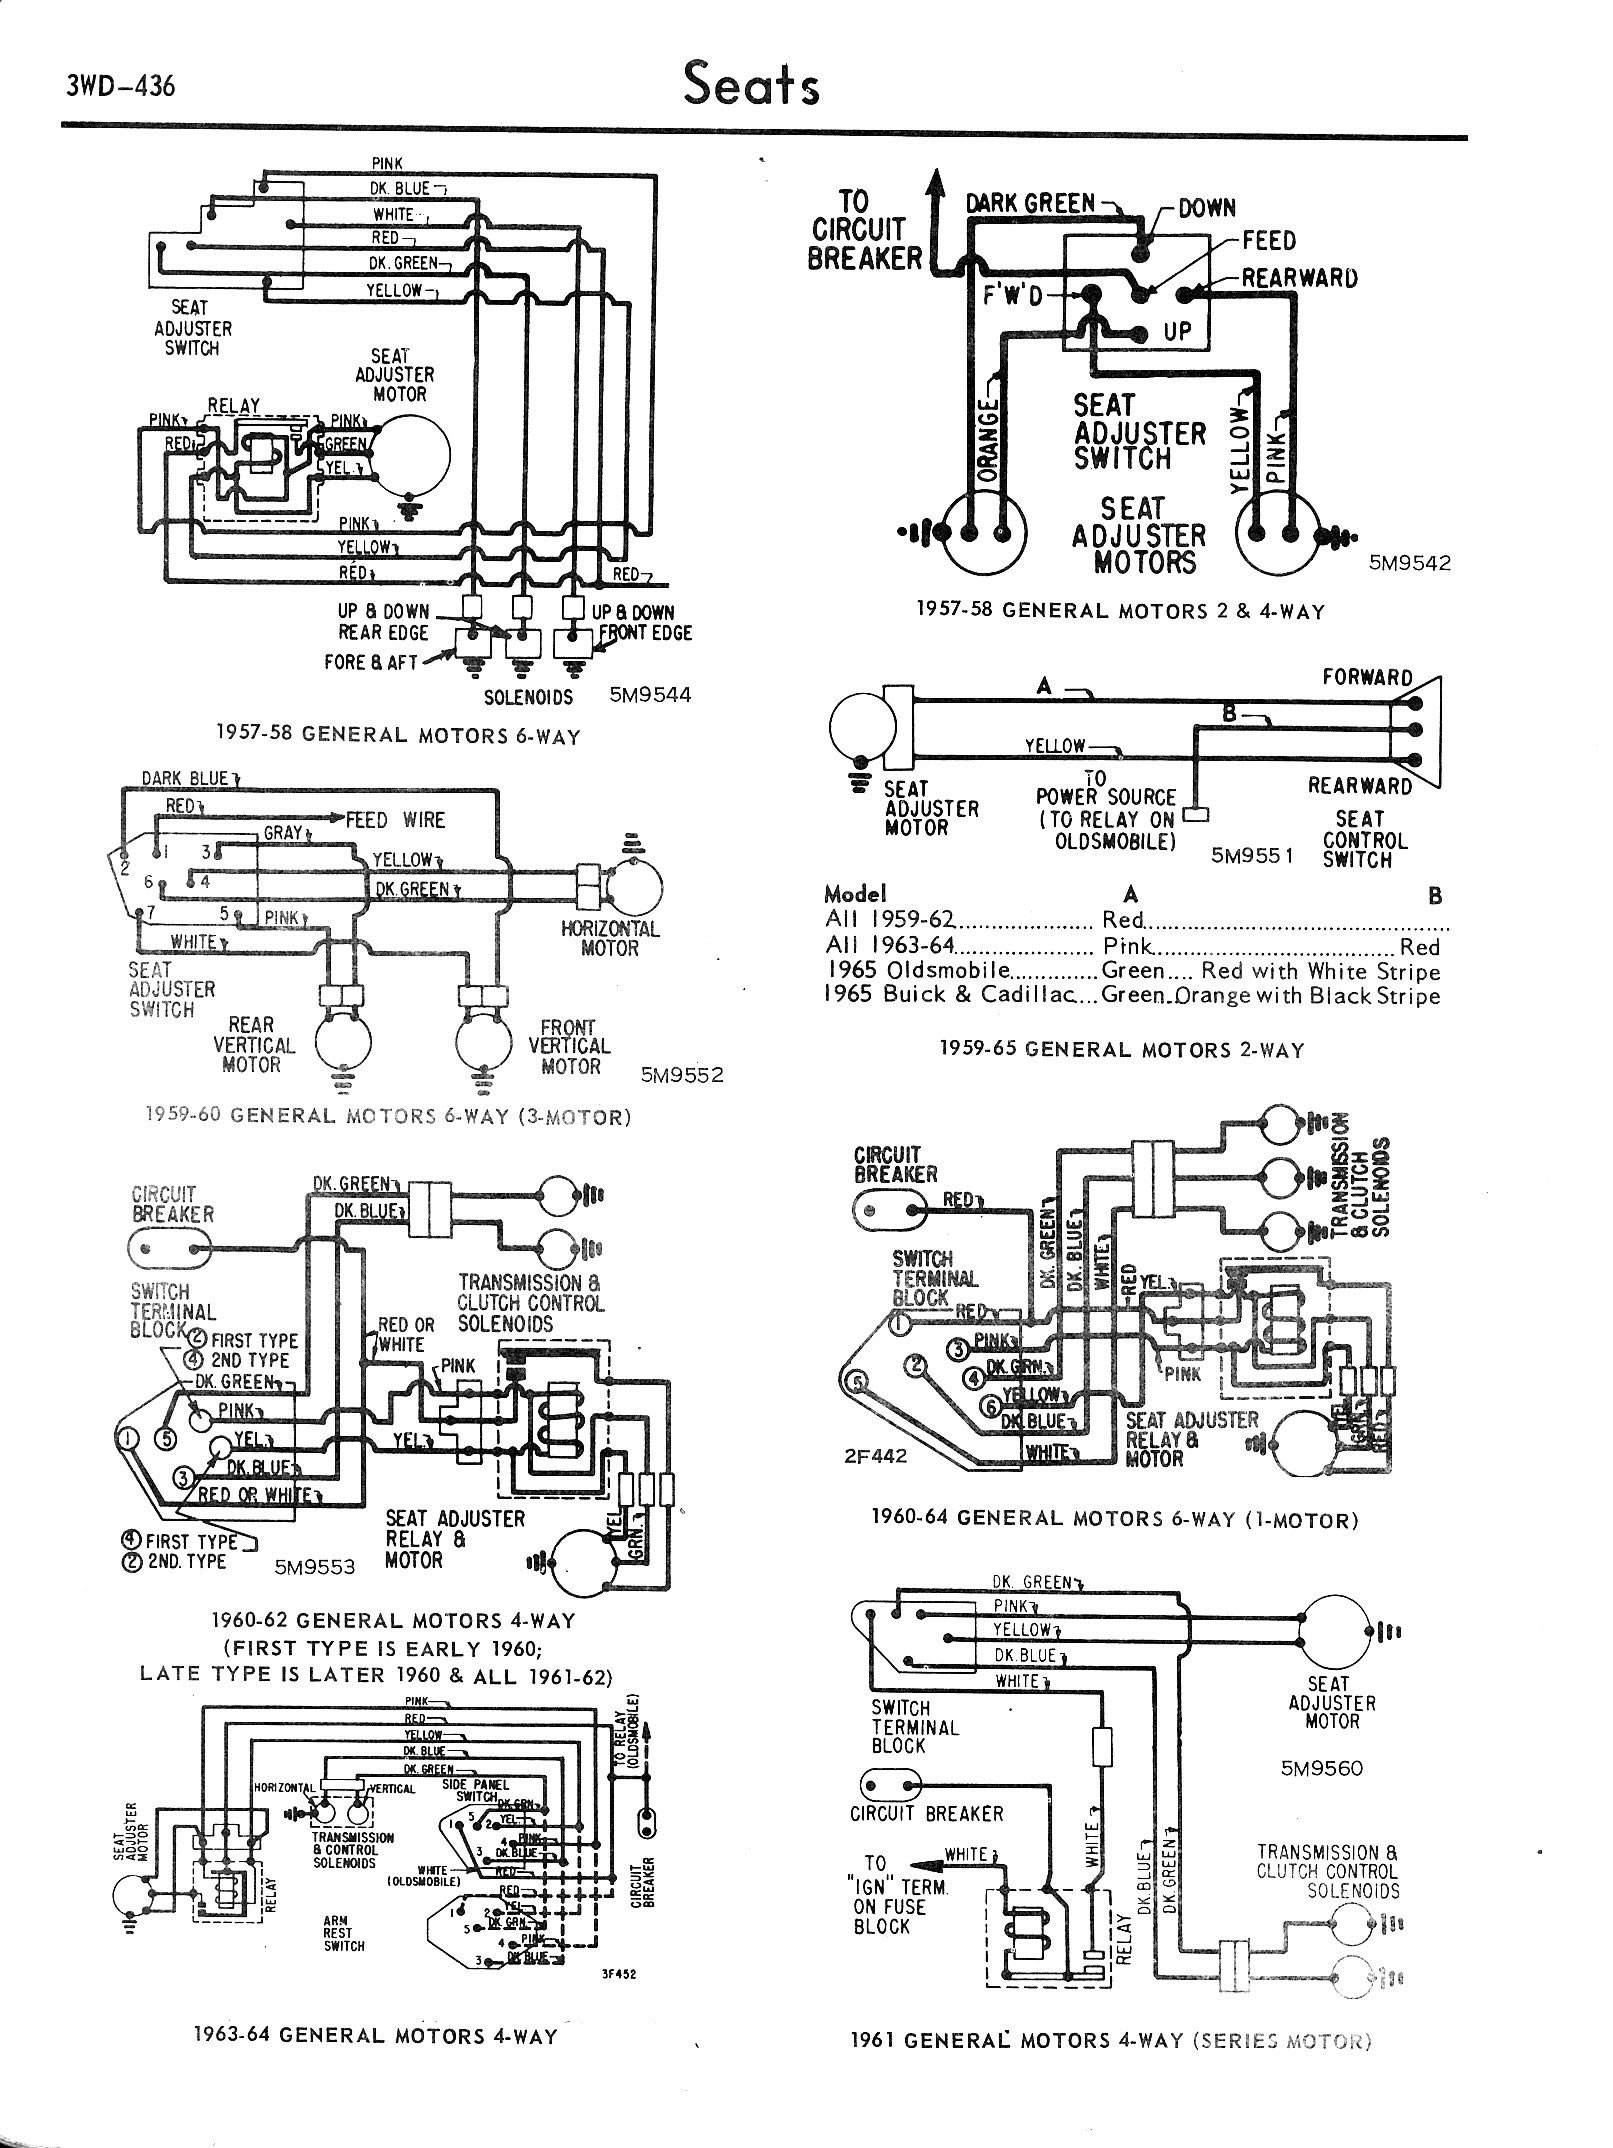 Chevy Diagrams 1960 Dodge Wiring Diagram C 57 64 Gm A Mix Of 2 Way 4 6